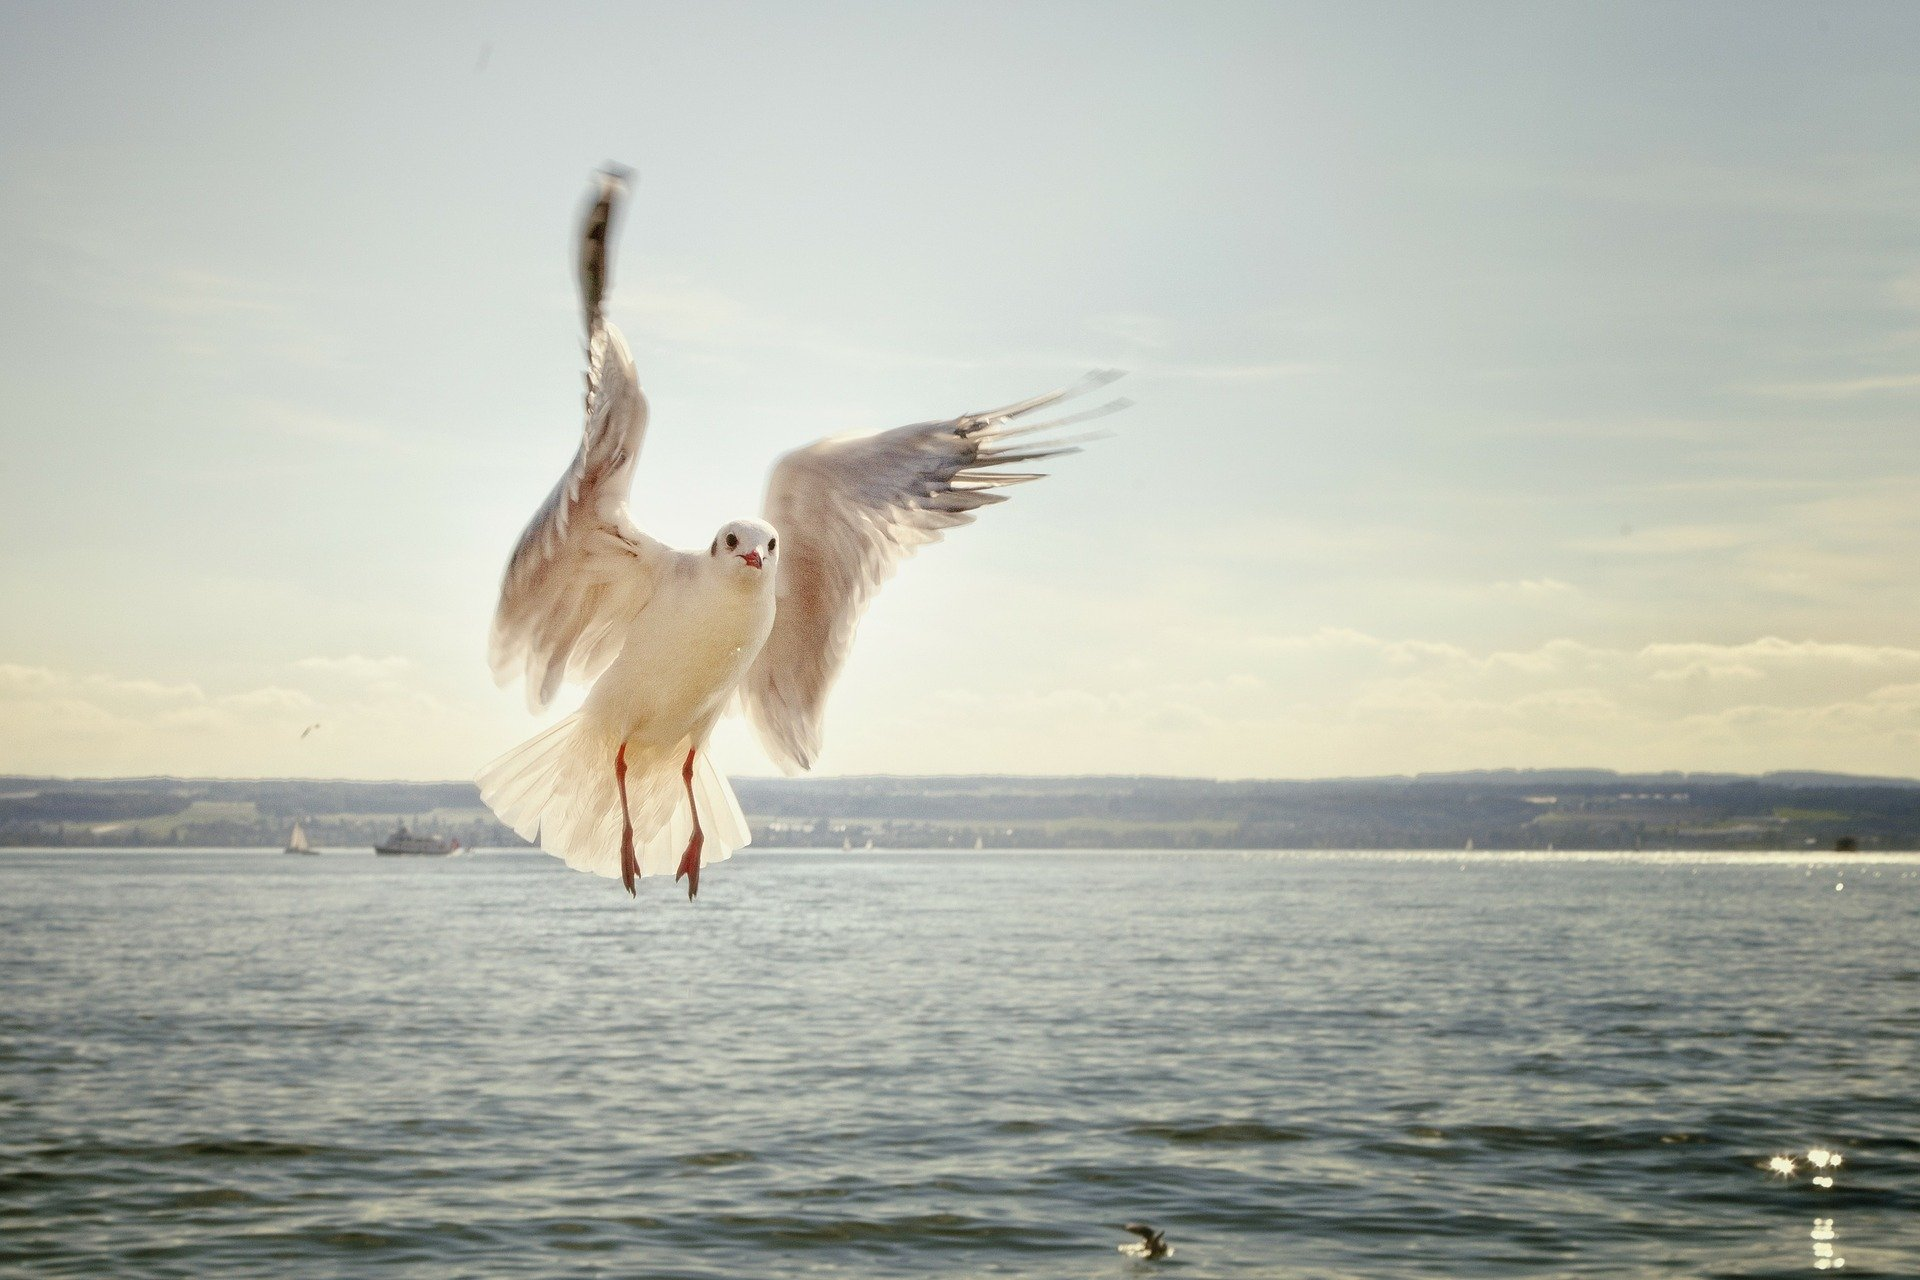 Eyezak asked us about birds. This is a picture of one over water